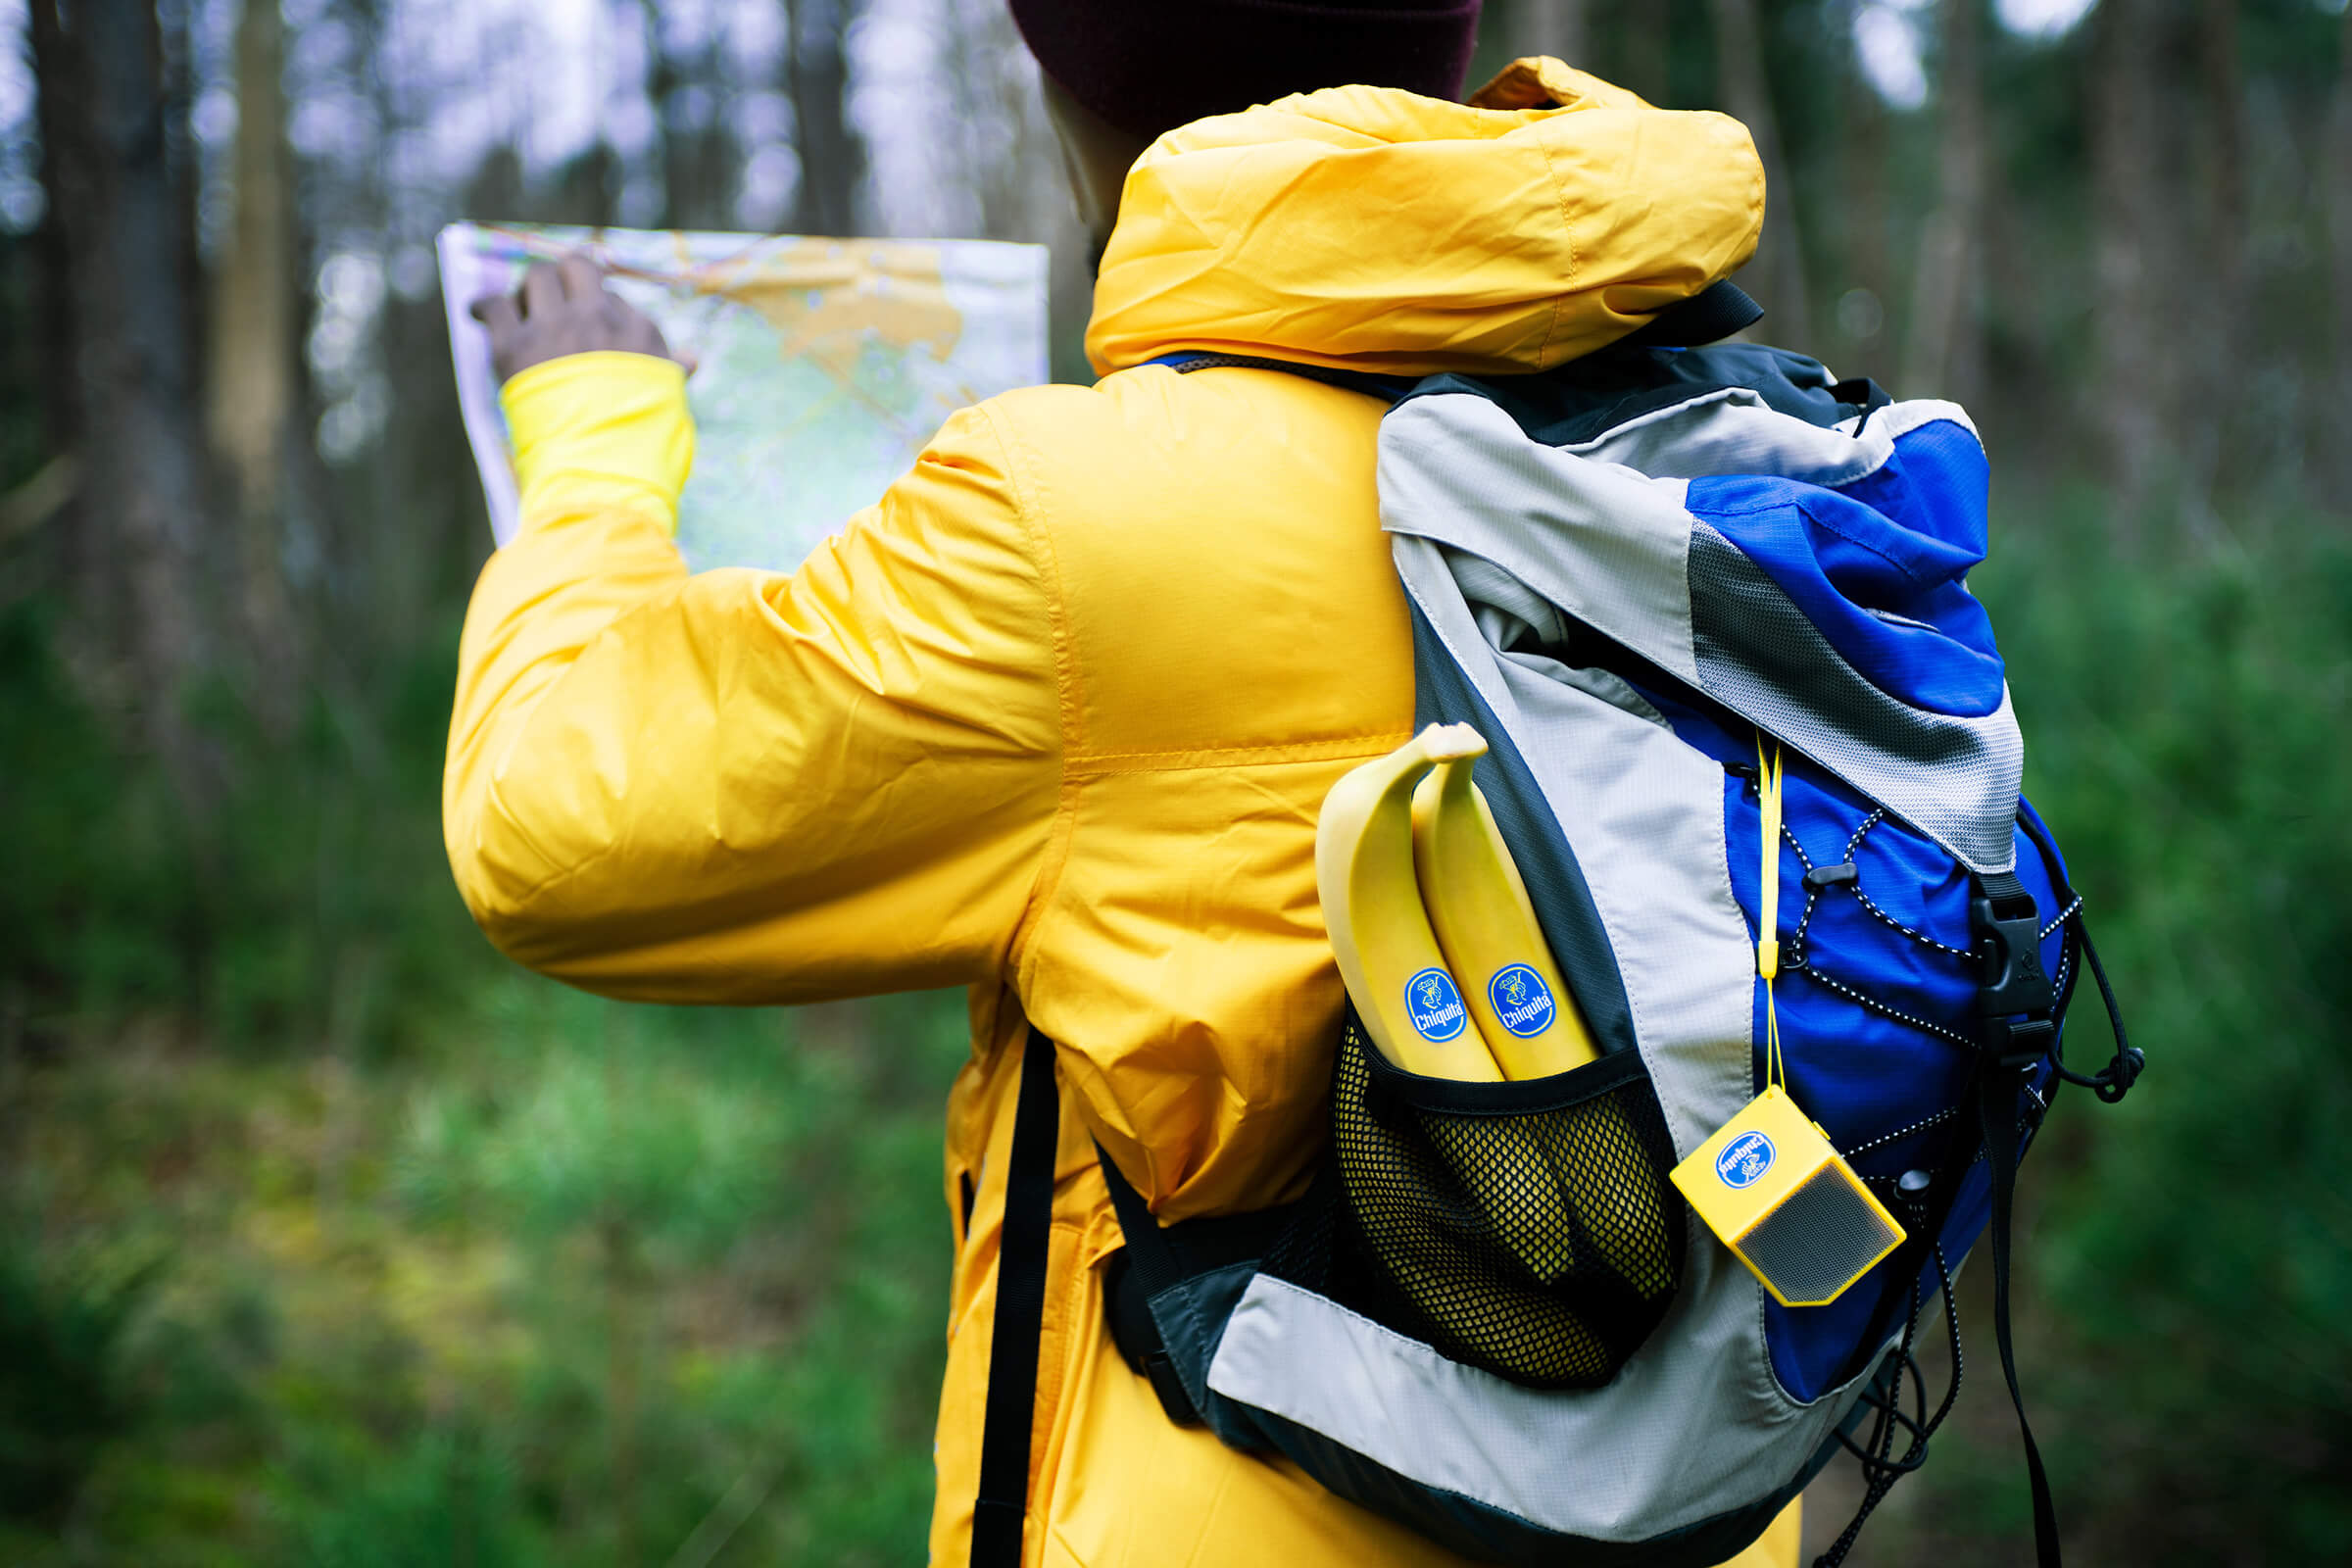 Backpacking with a Chiquita banana – the healthy and convenient snack - 1